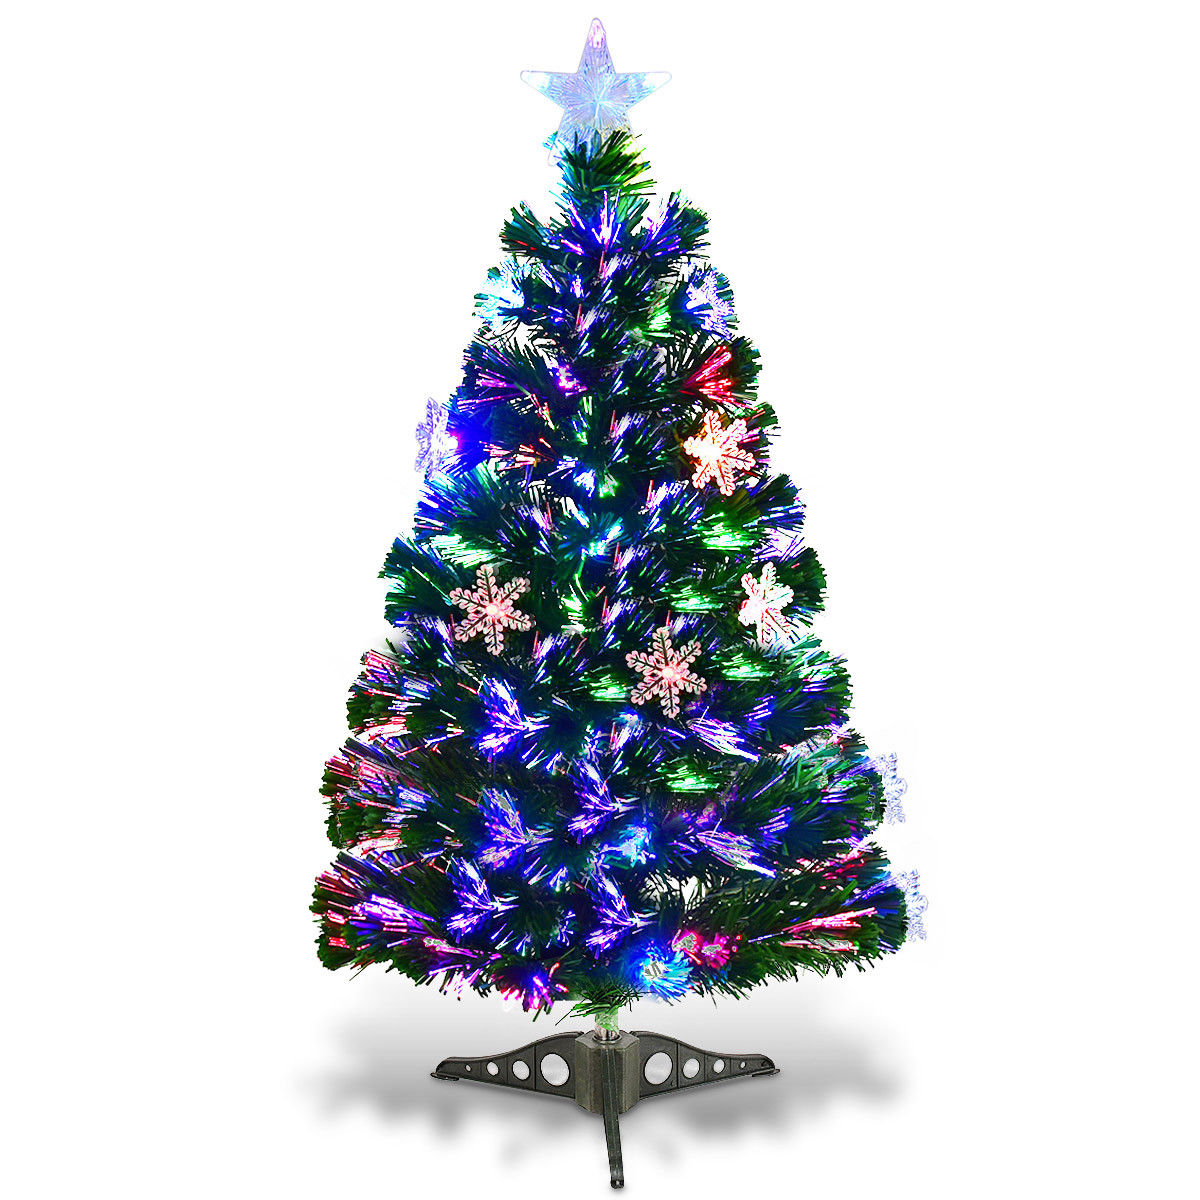 Gymax Fiber Optic 3' PVC Artificial Christmas Tree LED Lights Snowflakes Decoration